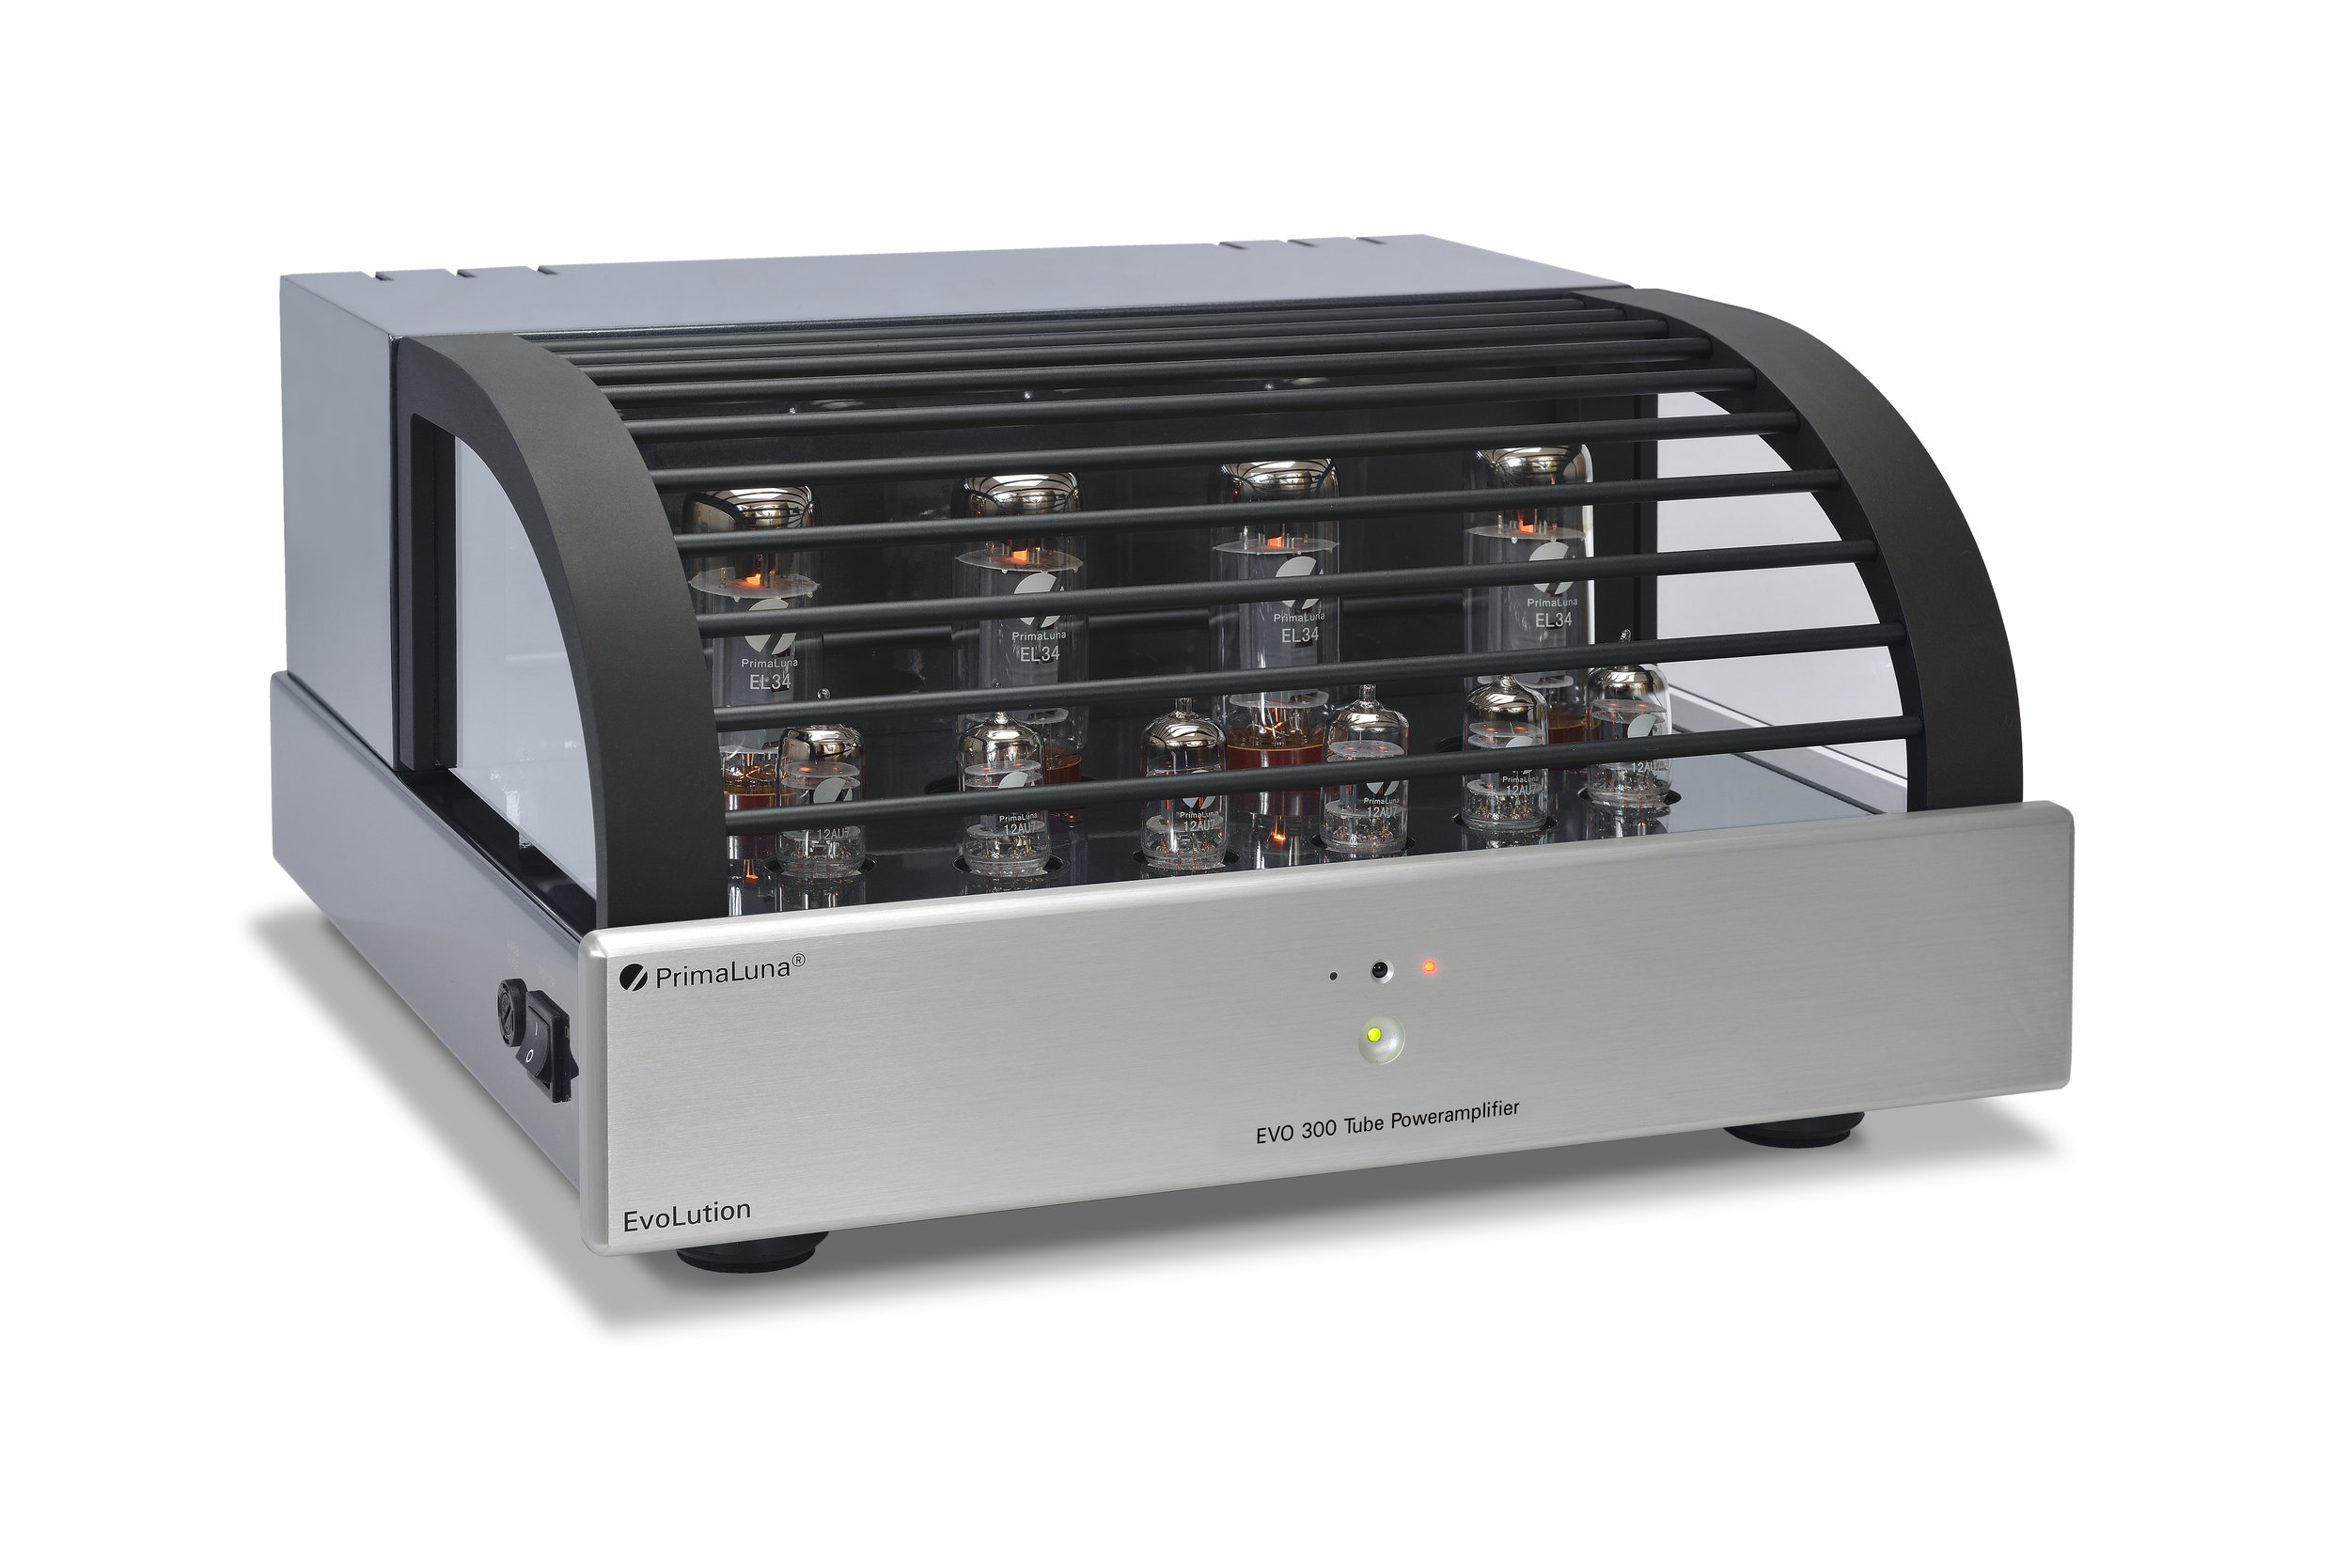 035b - PrimaLuna Evo 300 Tube Poweramplifier - silver - slanted - white background.jpg